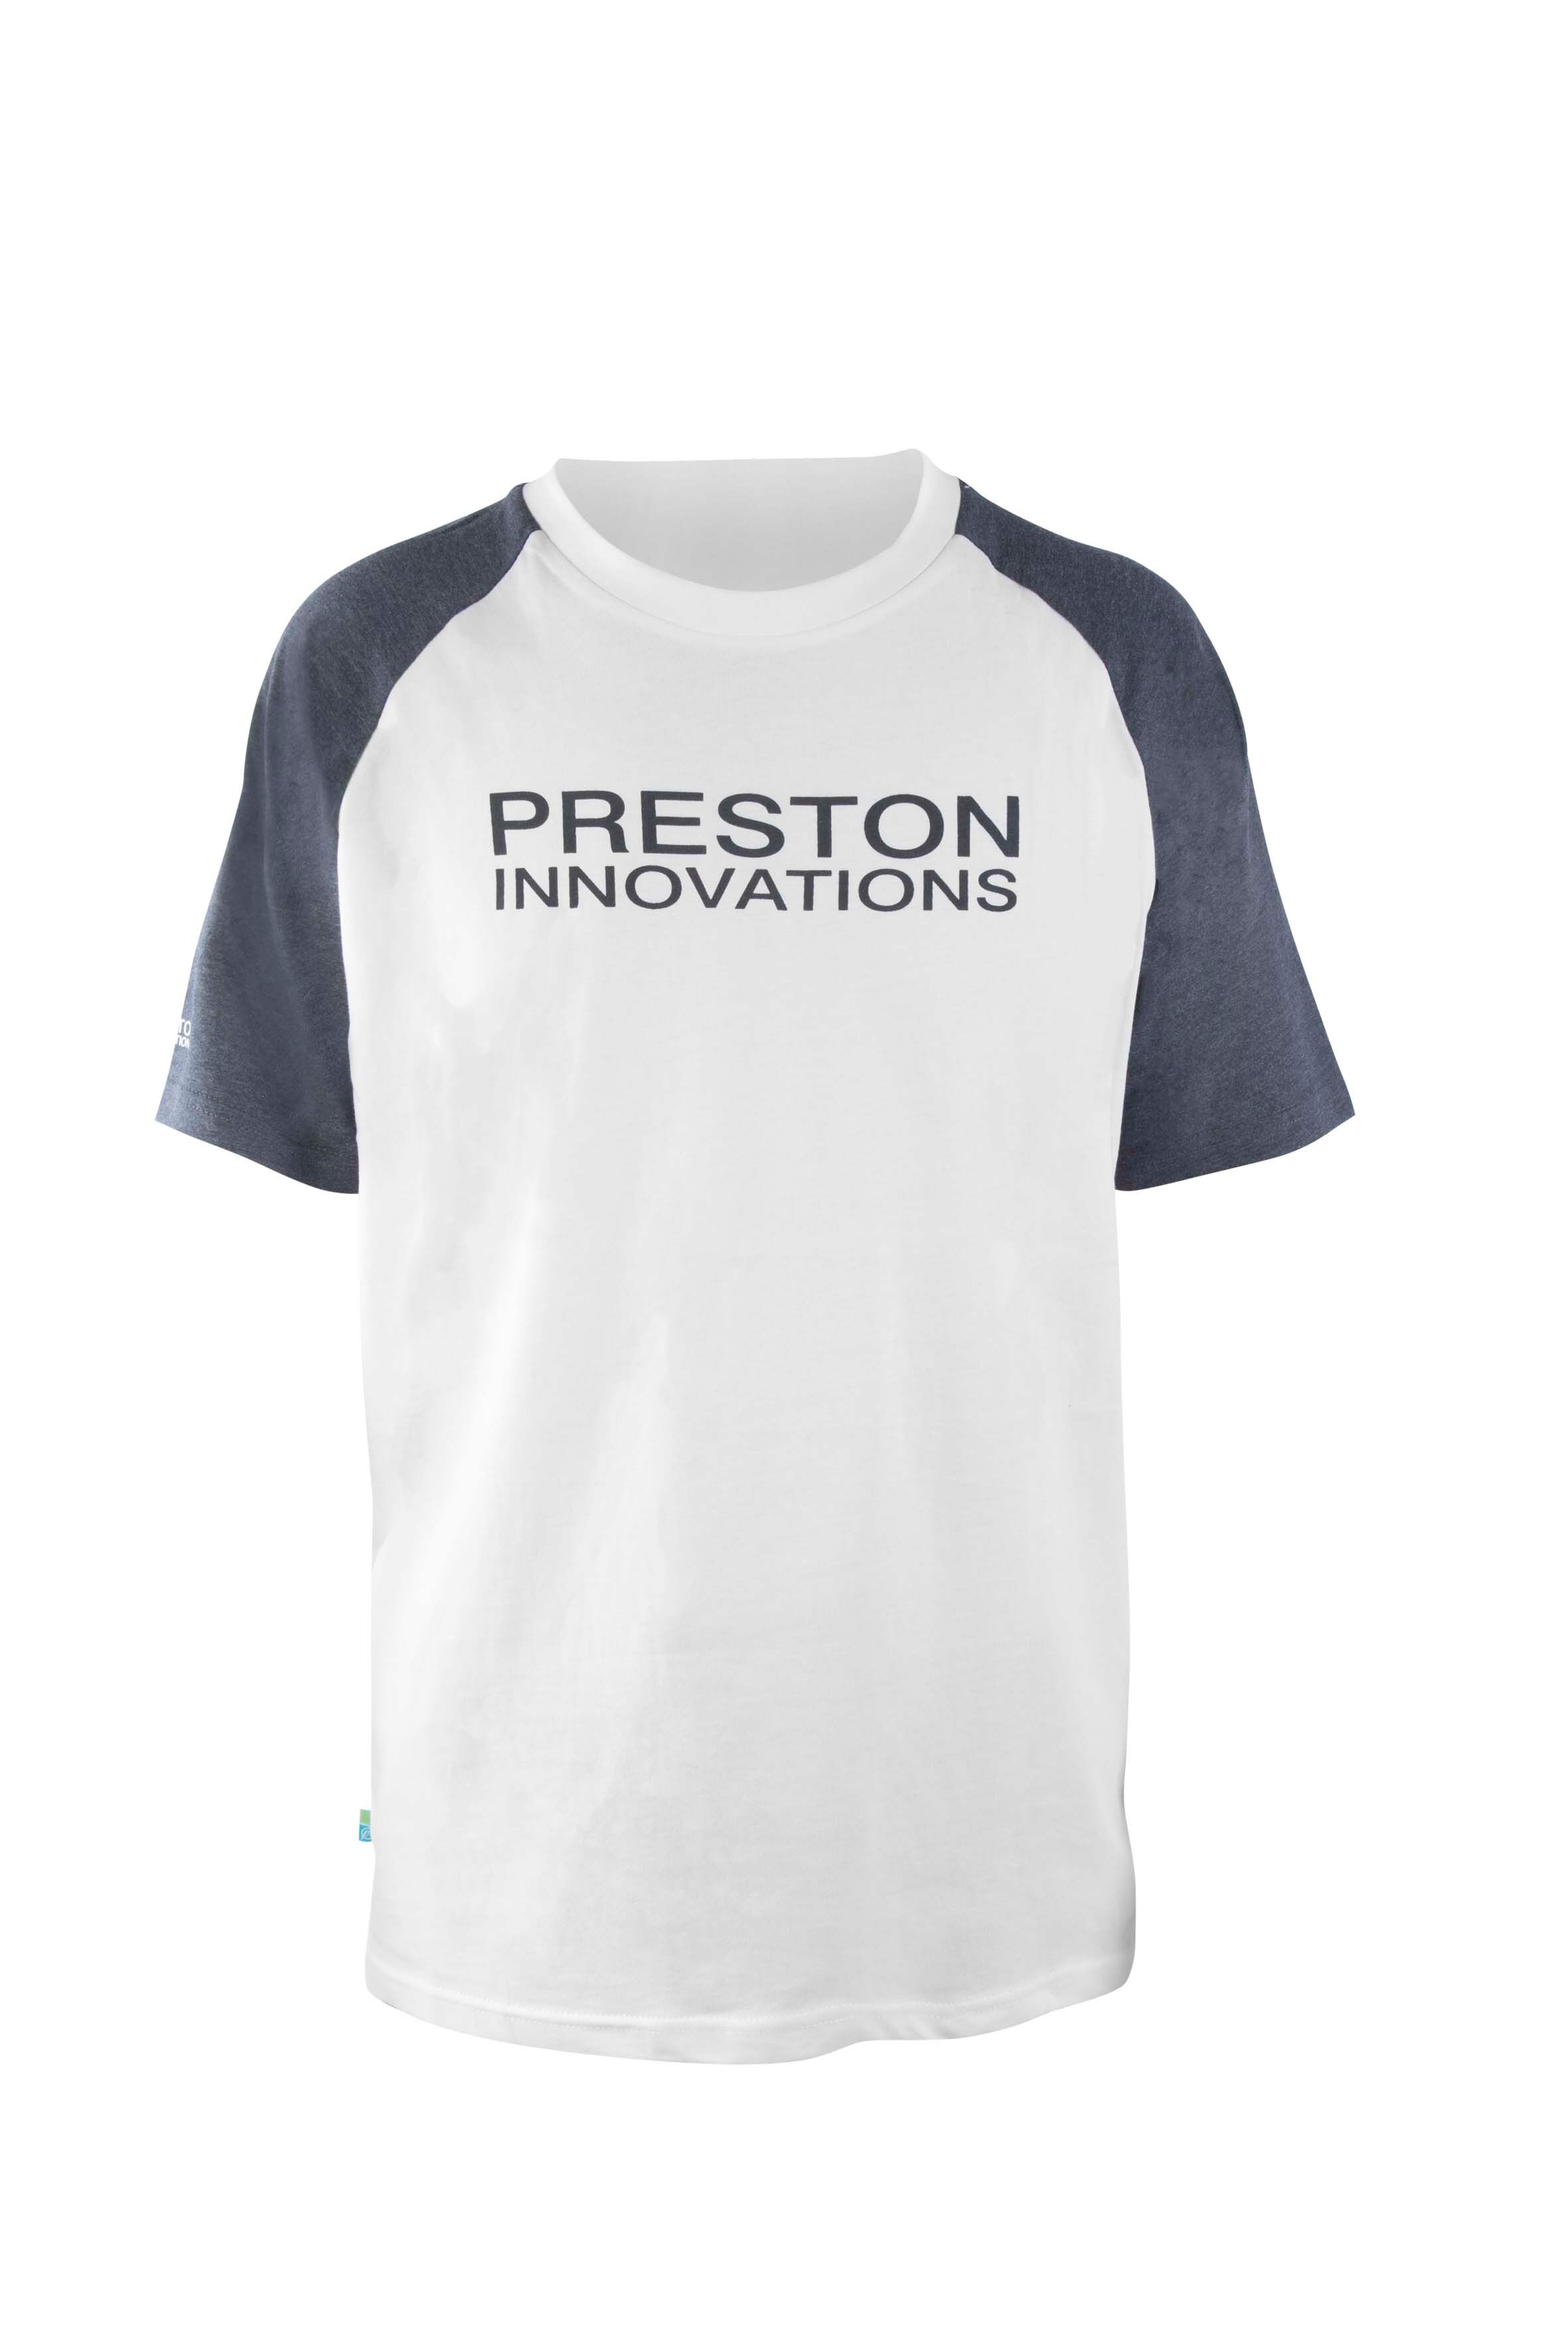 Preston White T-shirt